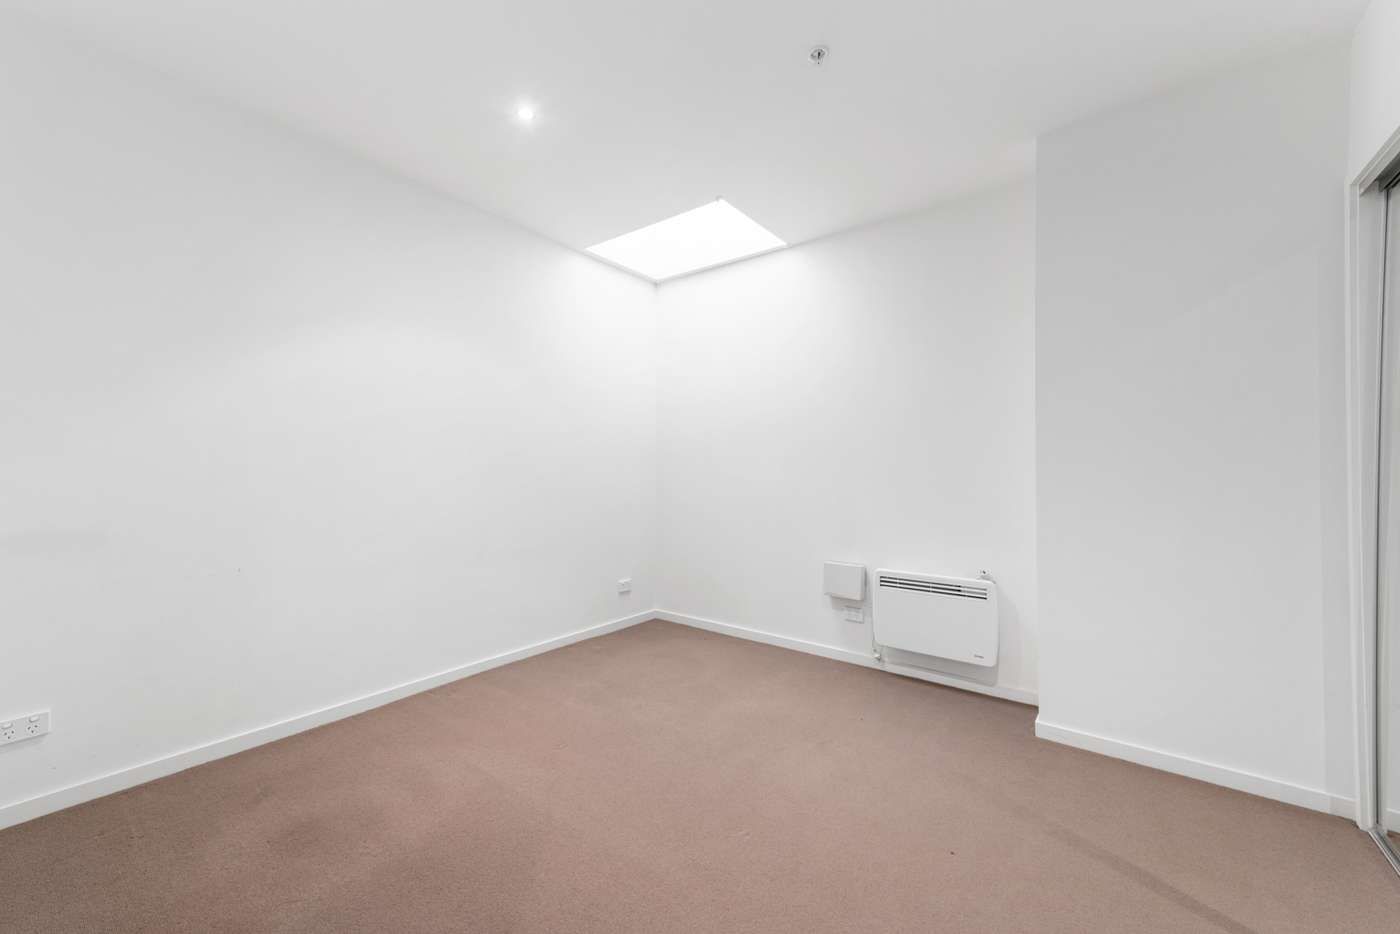 Sixth view of Homely apartment listing, 2/153 Barkly Street, Brunswick VIC 3056